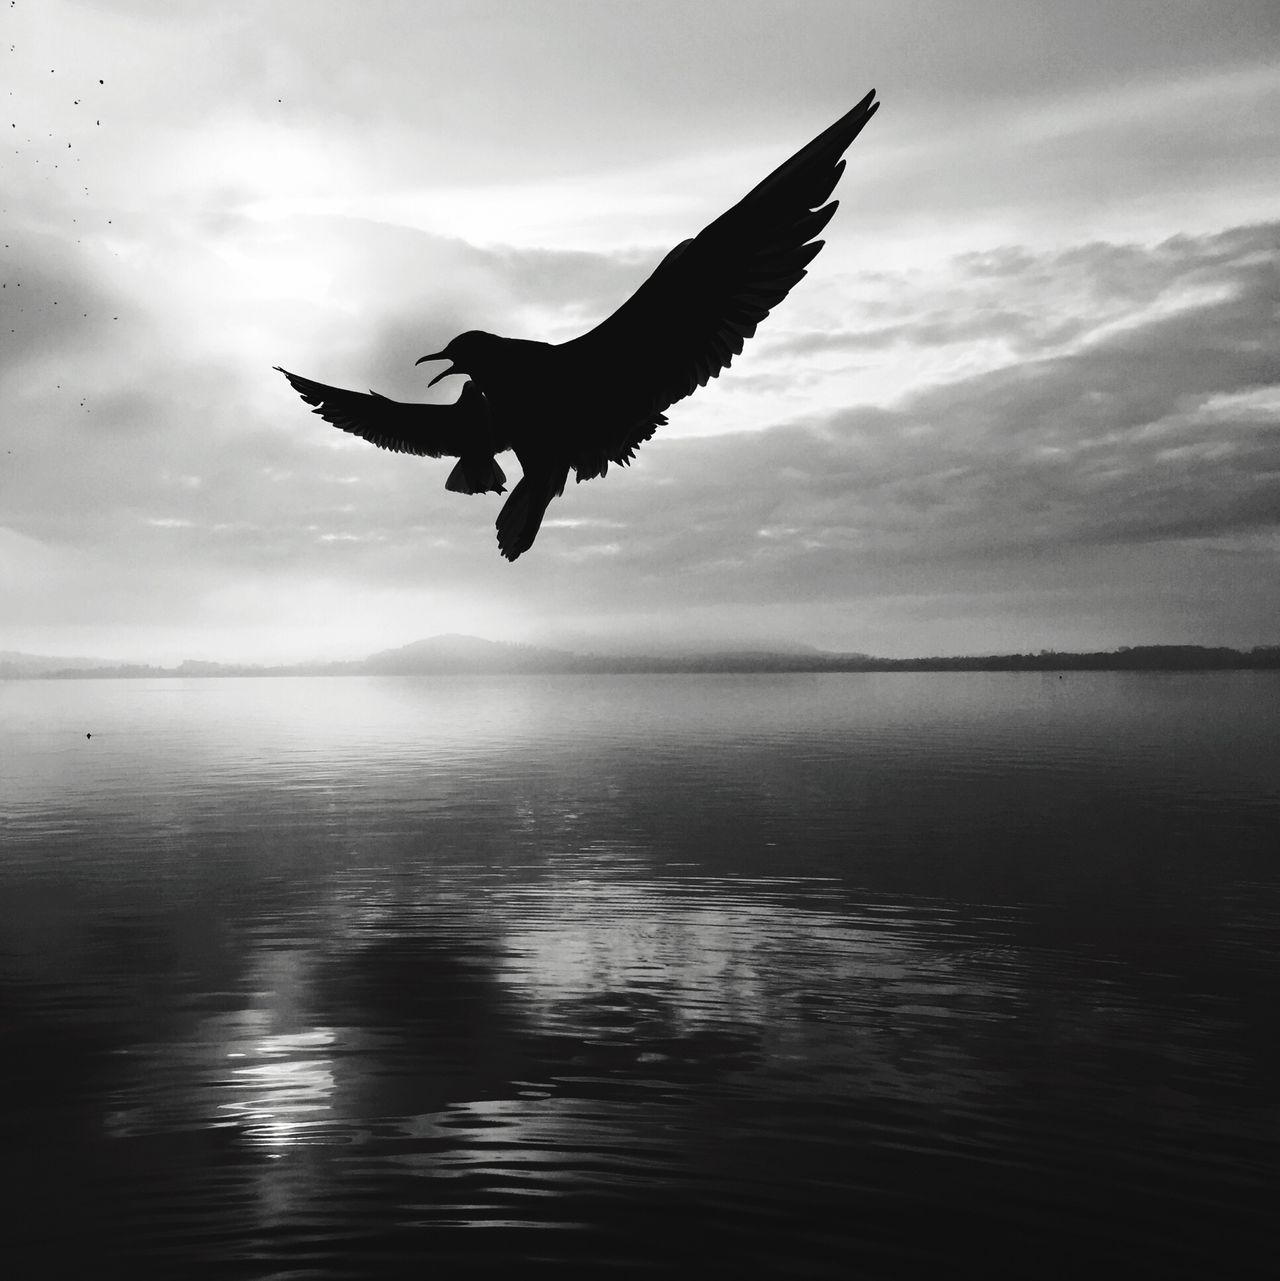 Fighting Seagull Seagull In Black&white From My Point Of View Perspective Amazing Birds  Look Up IPhoneography Flying Seagull Seagulls Here I Come Zugersee Going The Distance Learn & Shoot: Simplicity Showcase: November Photography In Motion